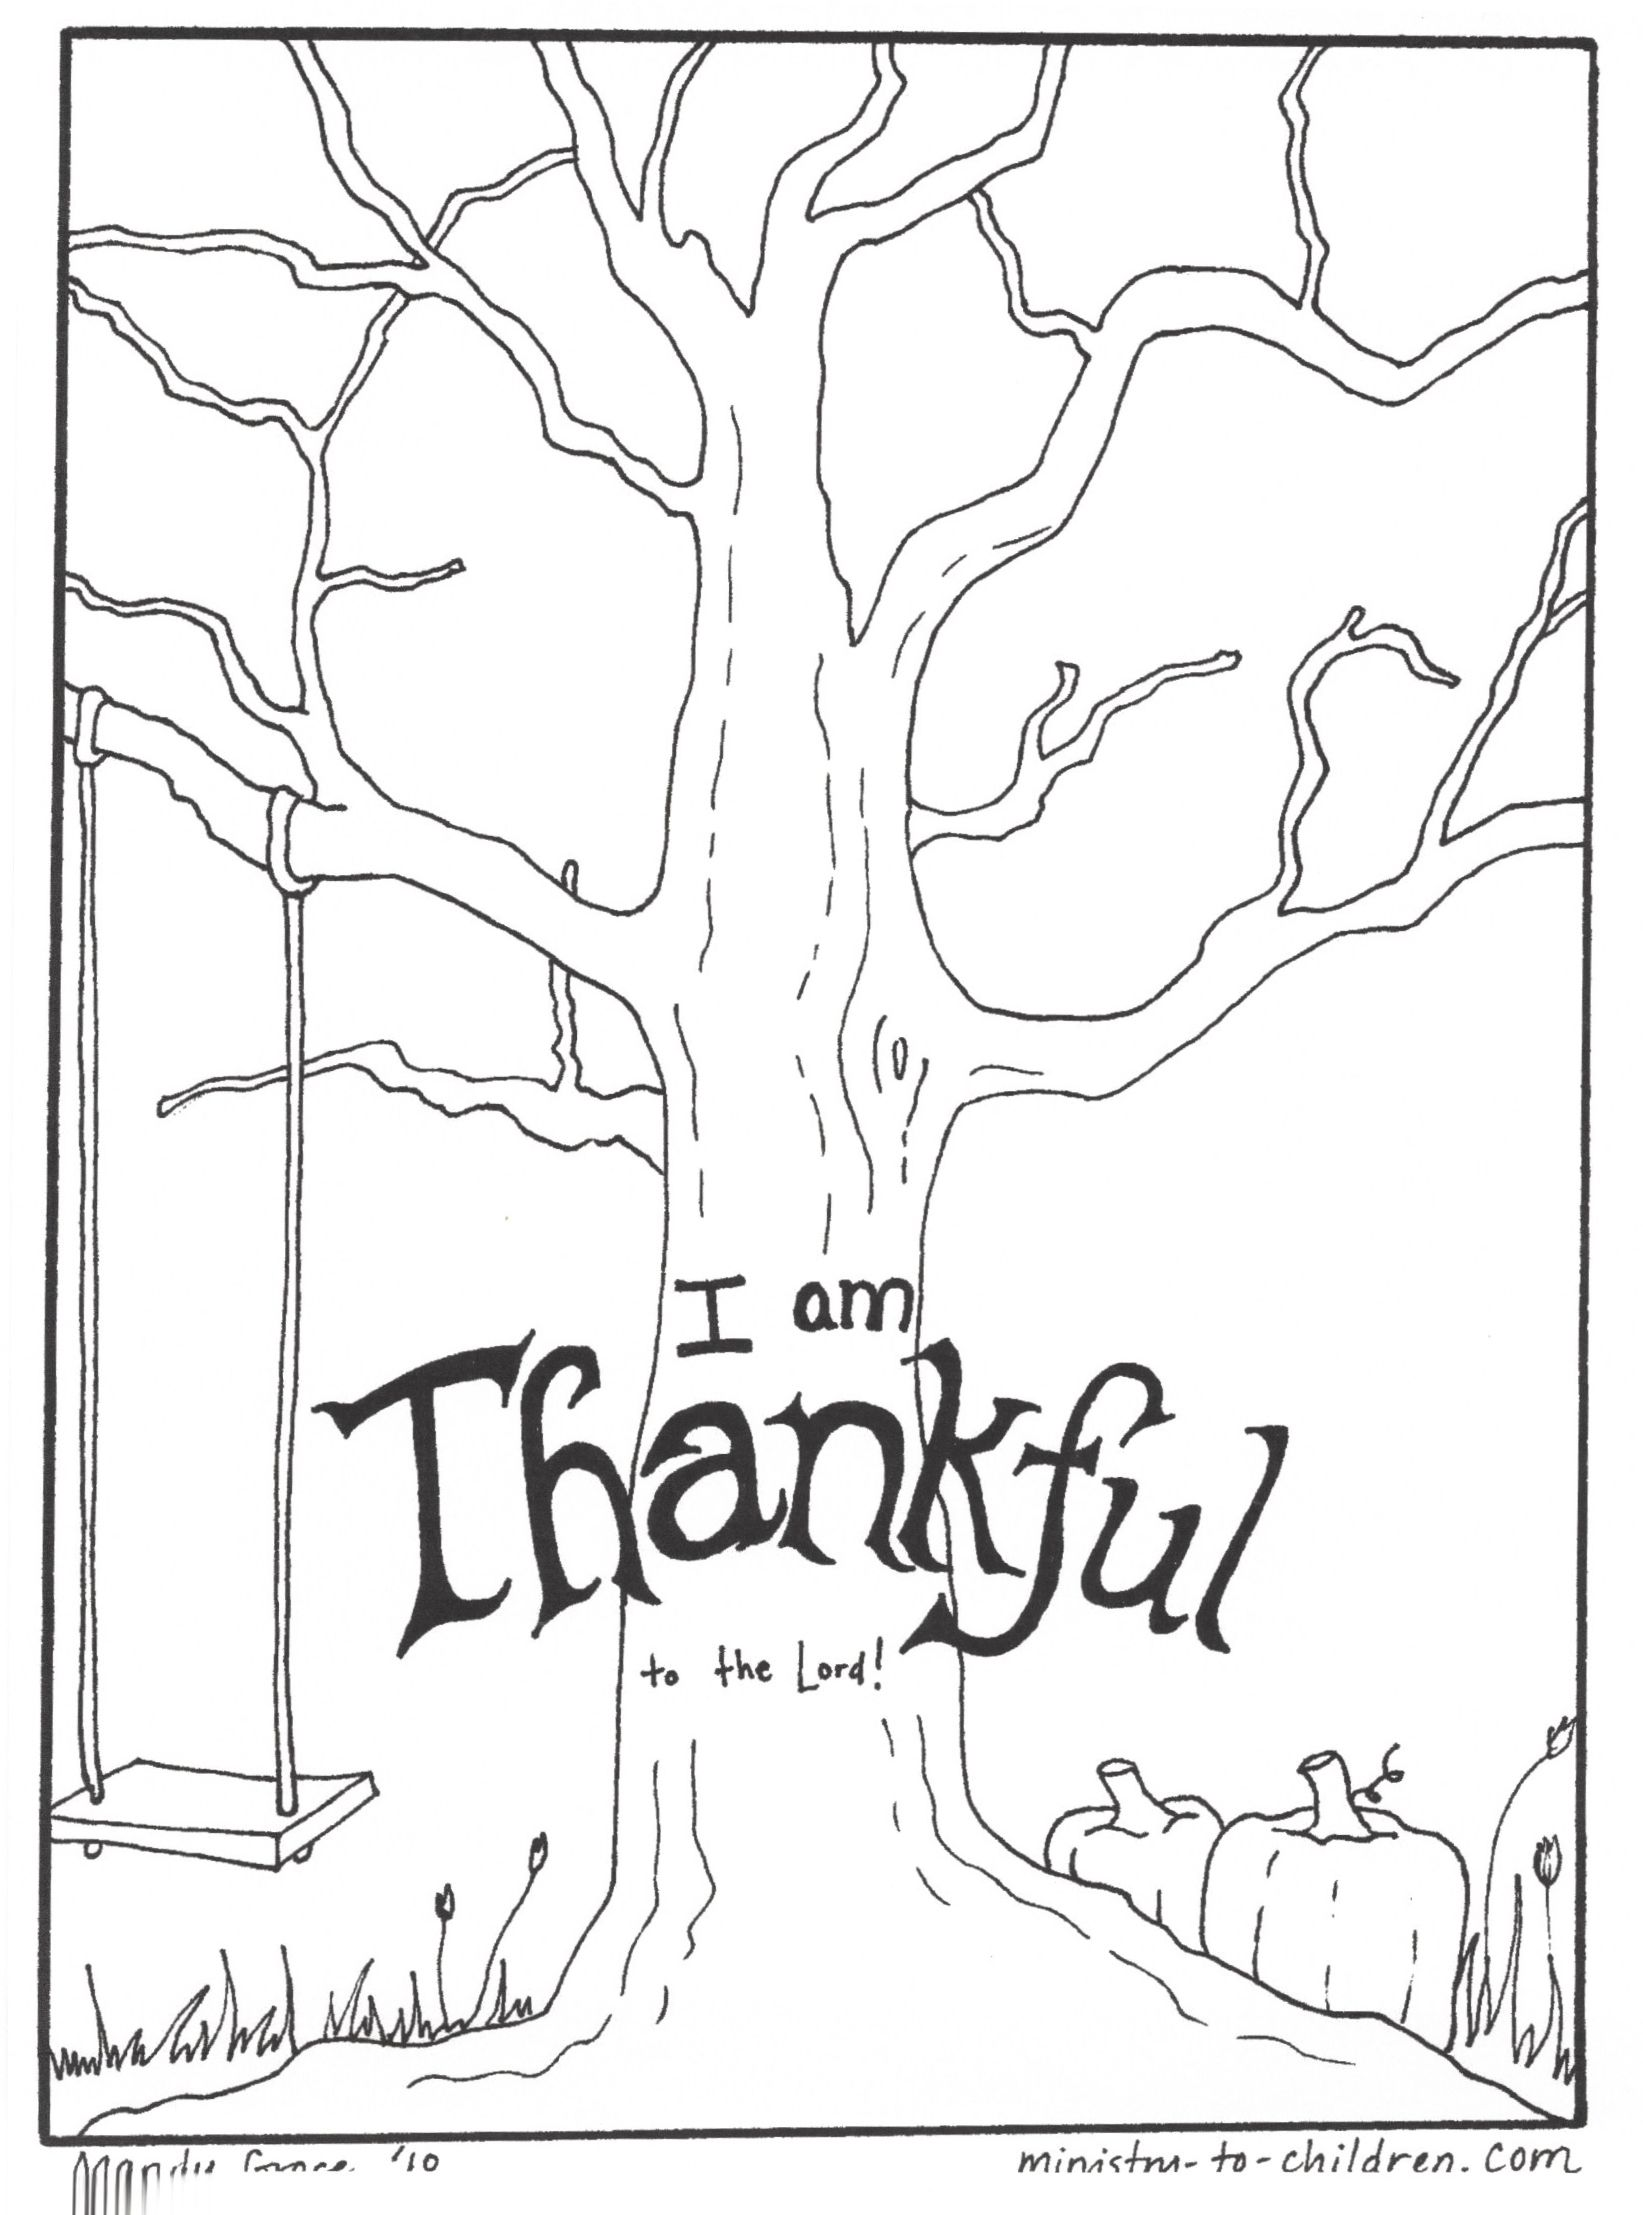 1643x2215 Inspiring Color The Image For Being Thankful Coloring Pages Ideas